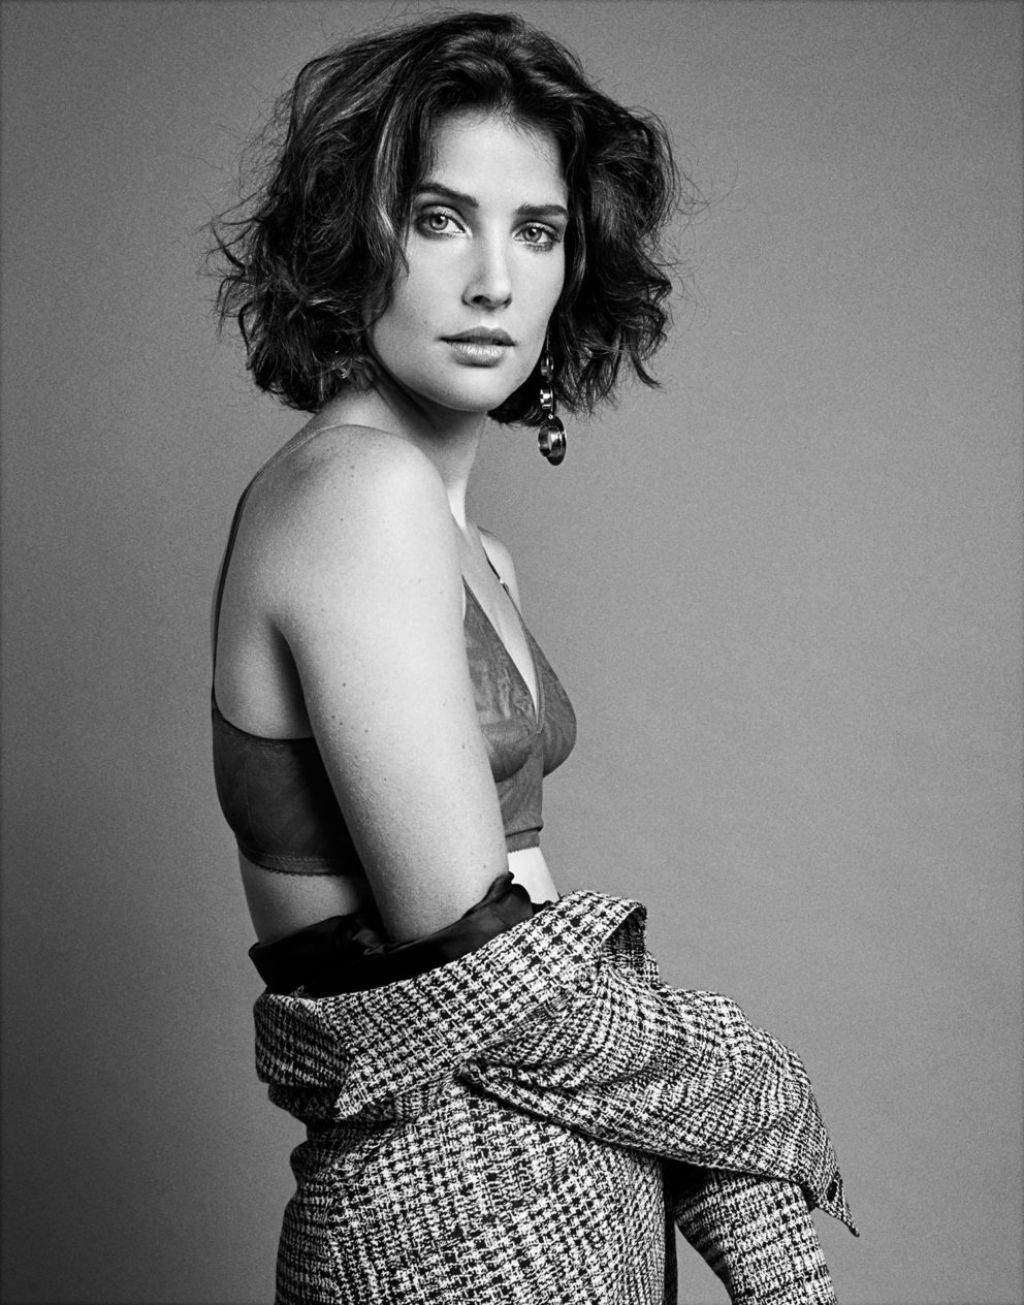 Cobie Smulders Photoshoot For Sbjct Journal 12 11 2017